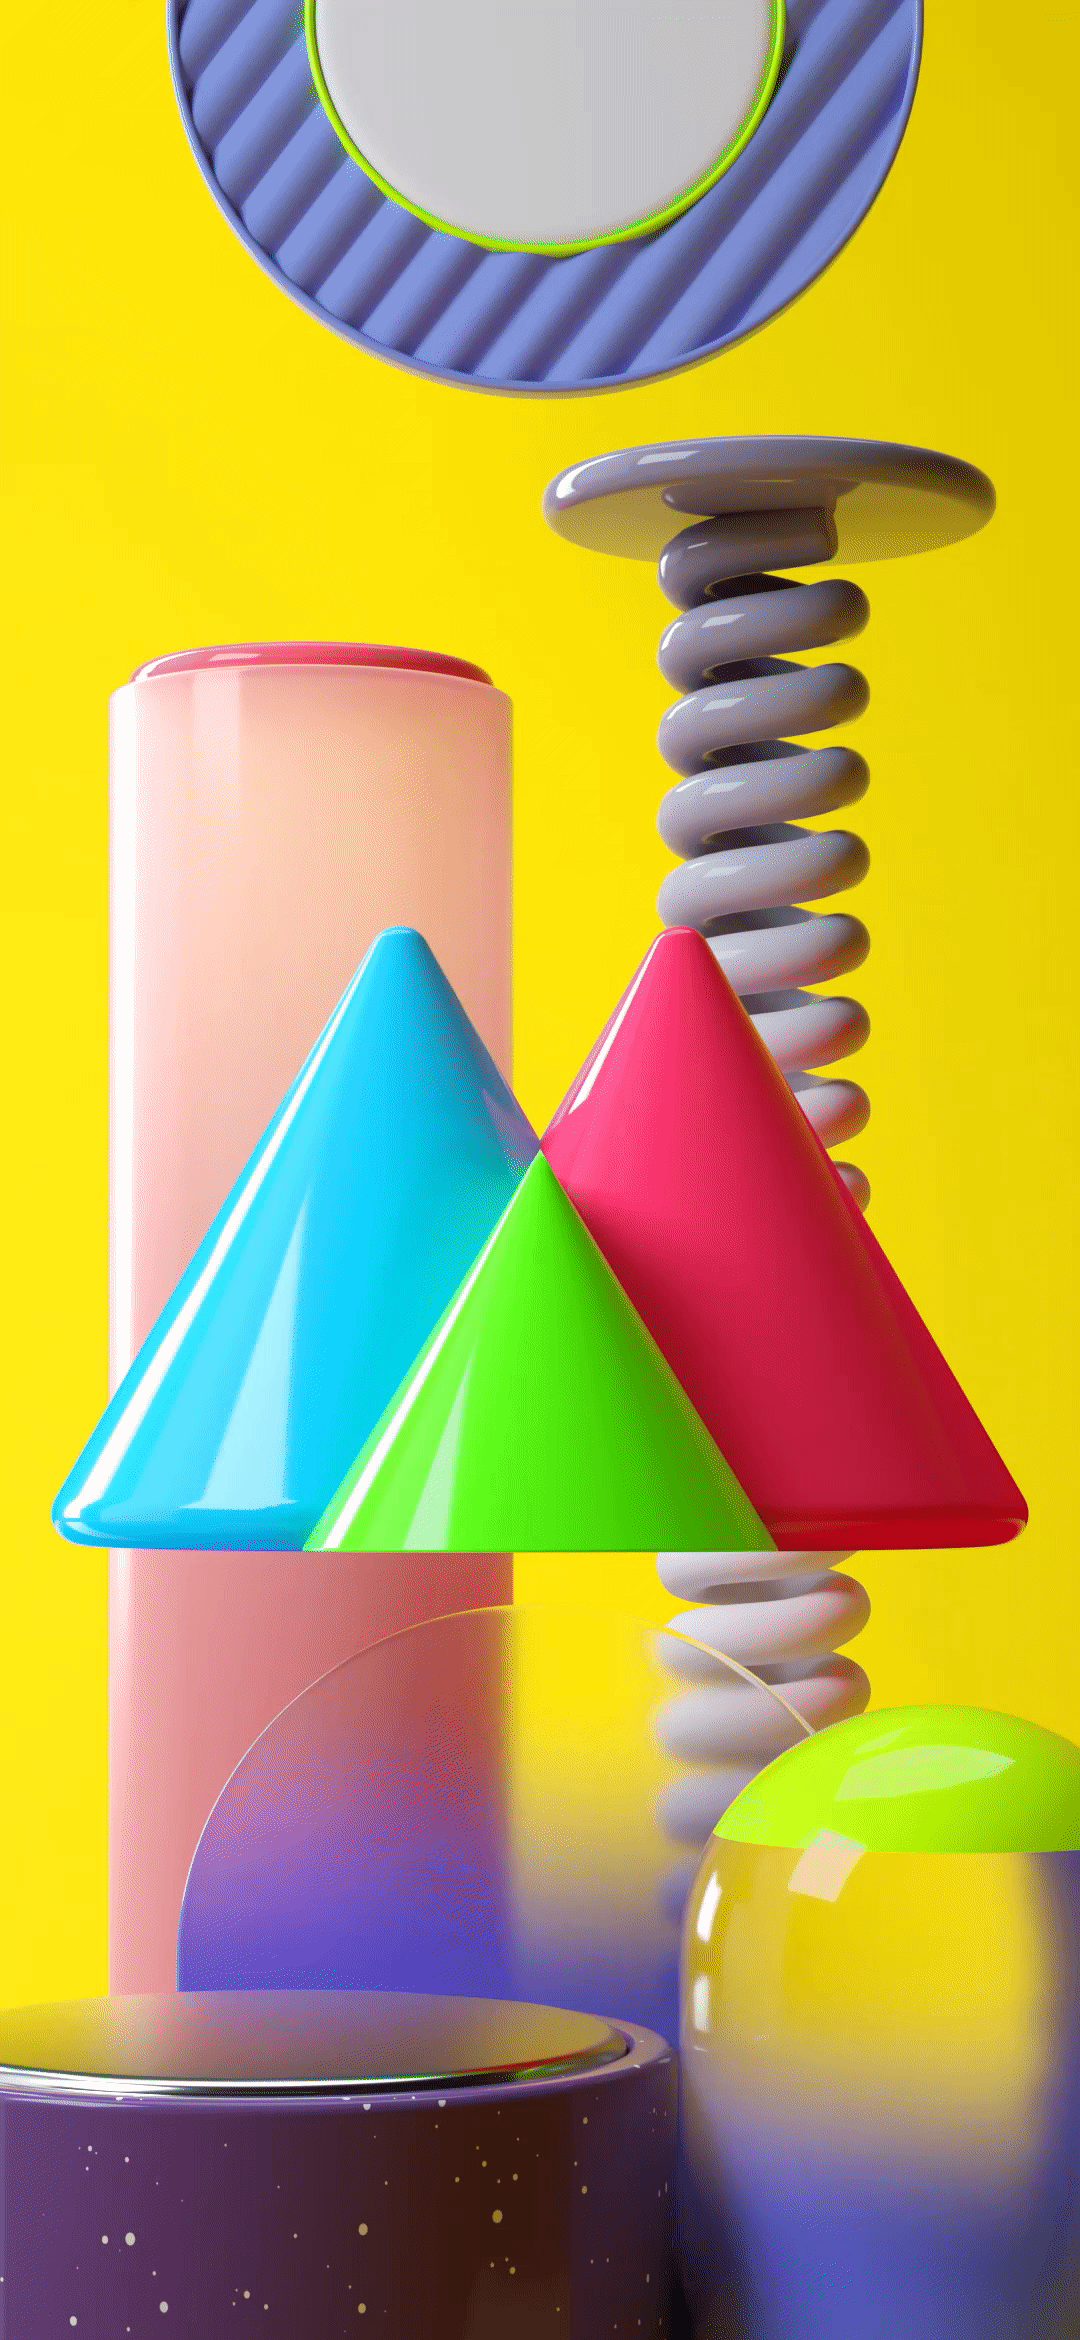 Download Samsung Galaxy M31 Static and Live Wallpapers in